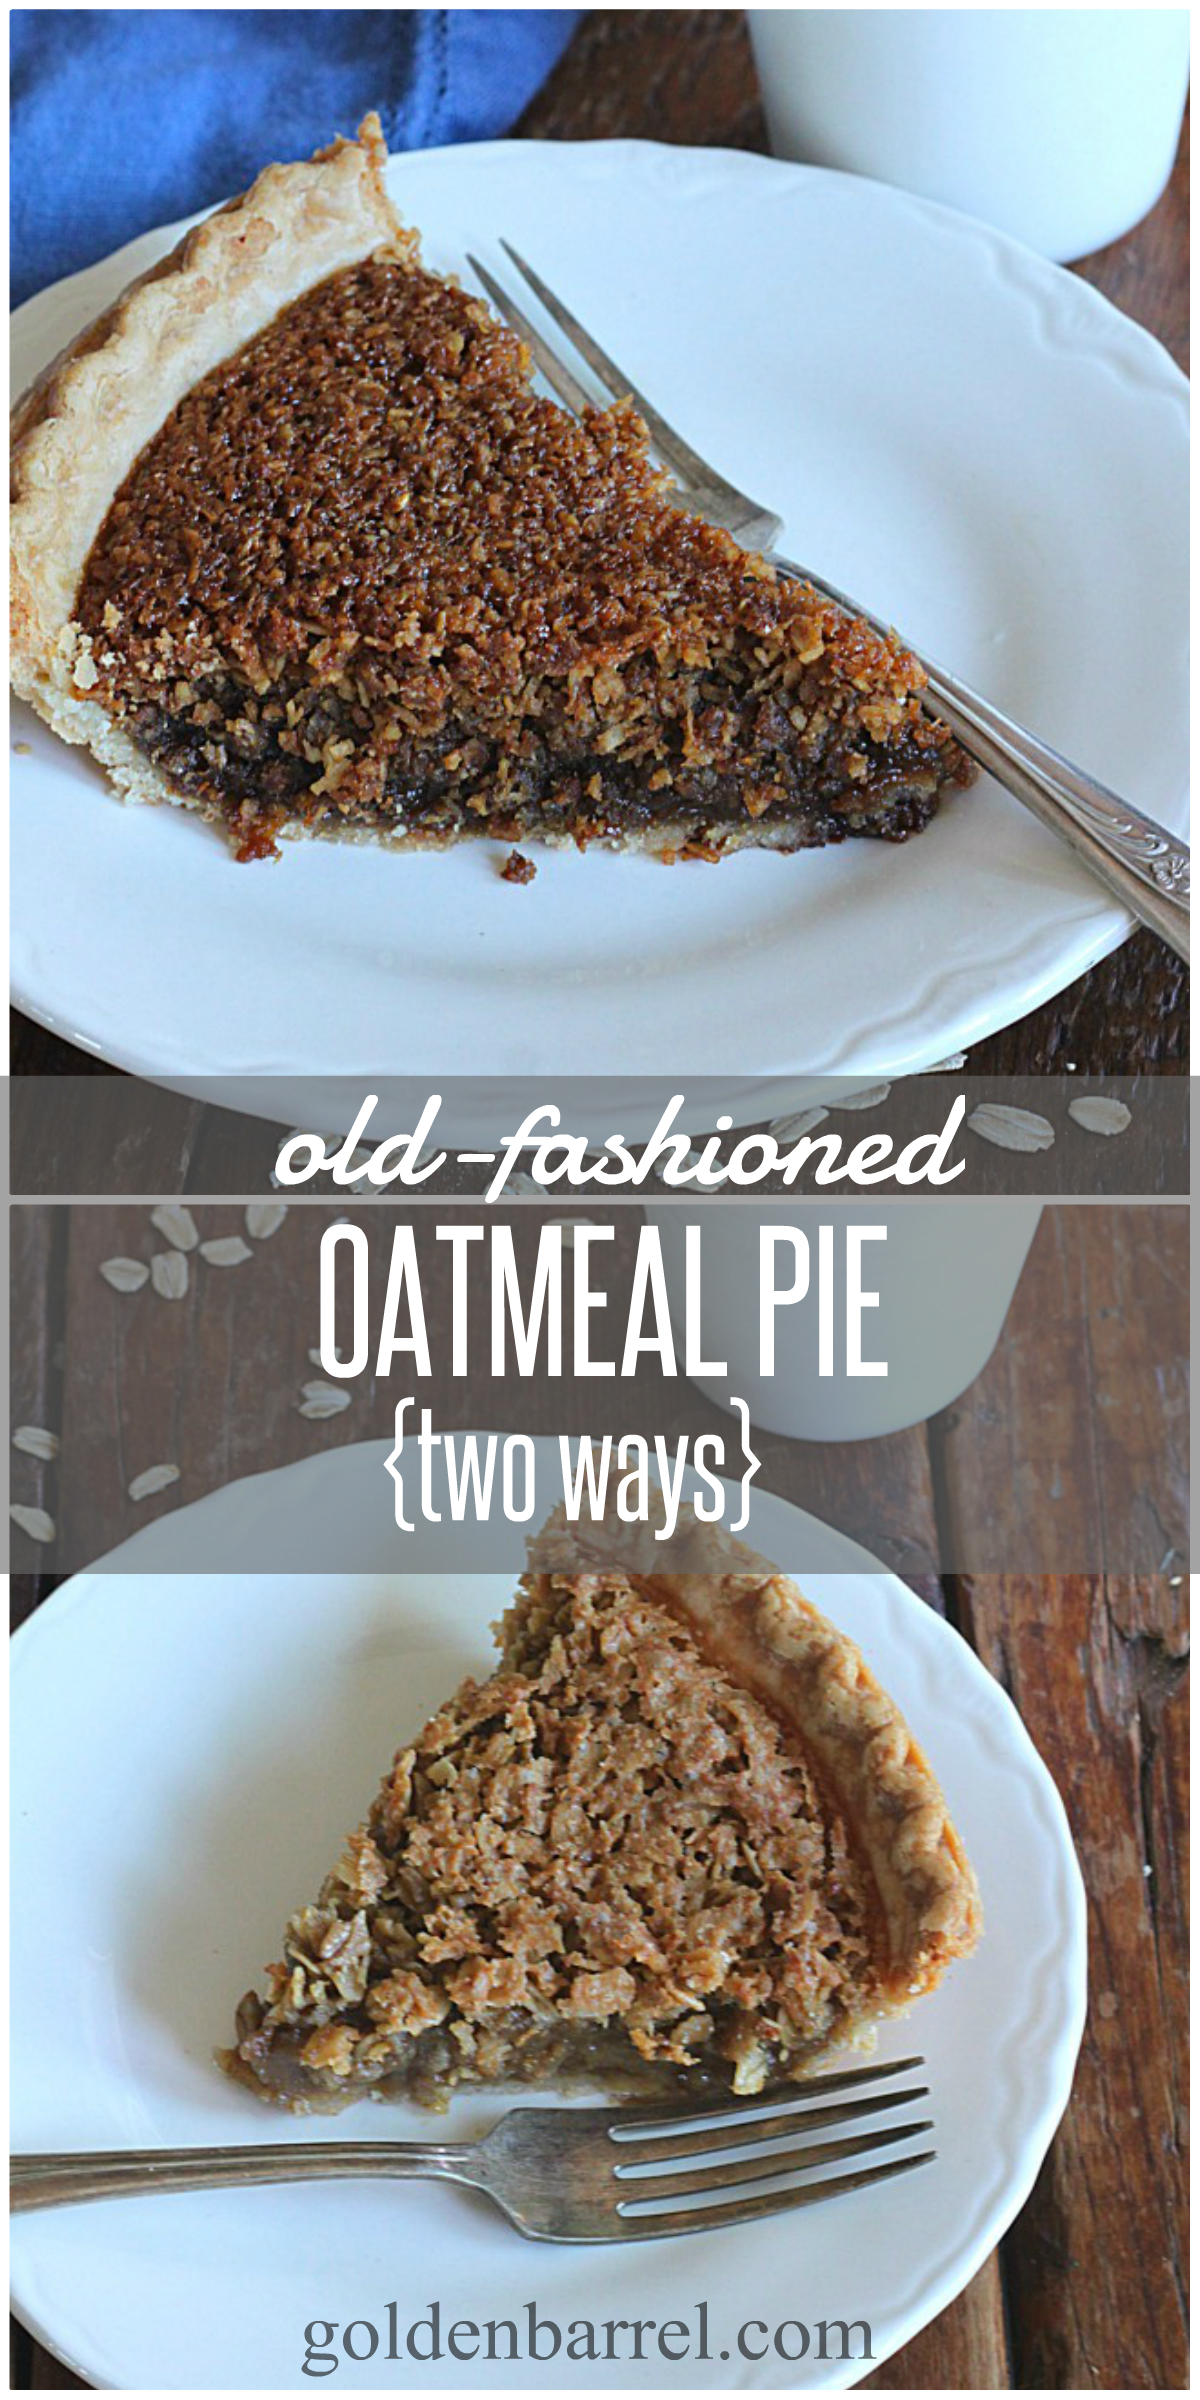 Oatmeal Pie Two Ways - Molasses or Brown Sugar